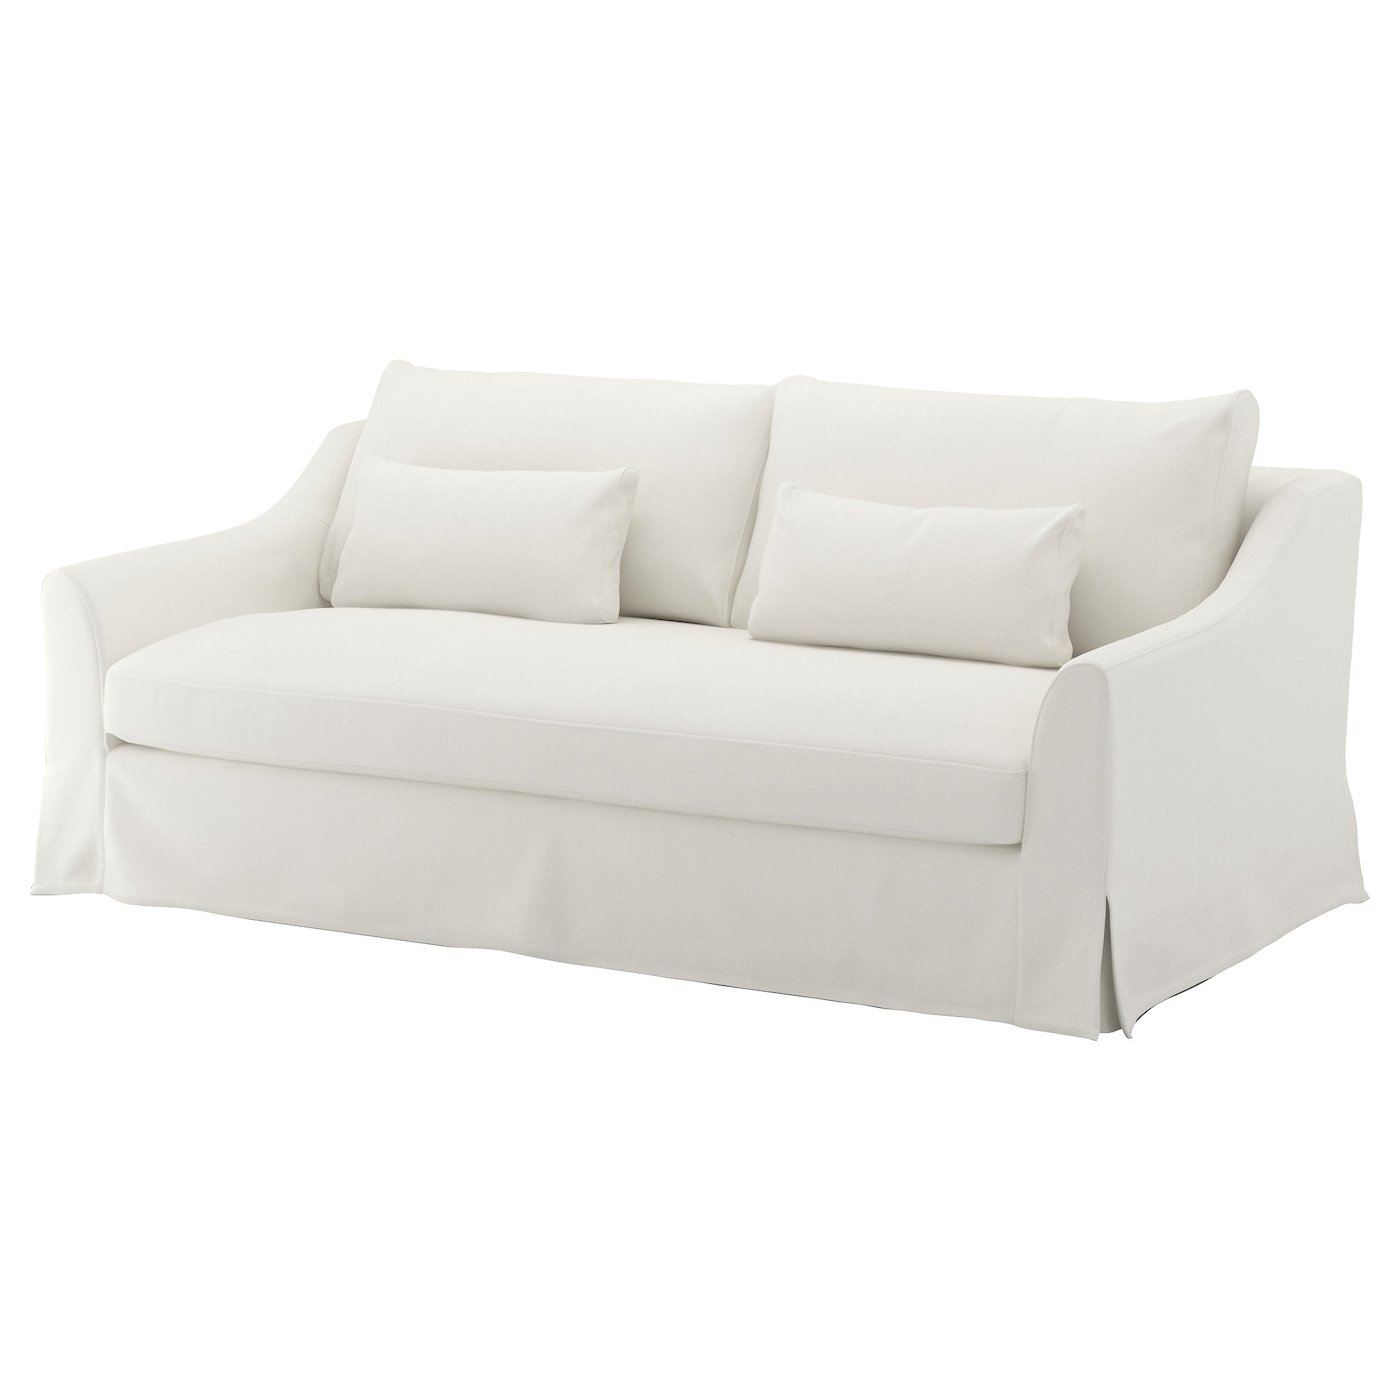 Sofas settees couches more ikea - Cojines para sofa blanco piel ...